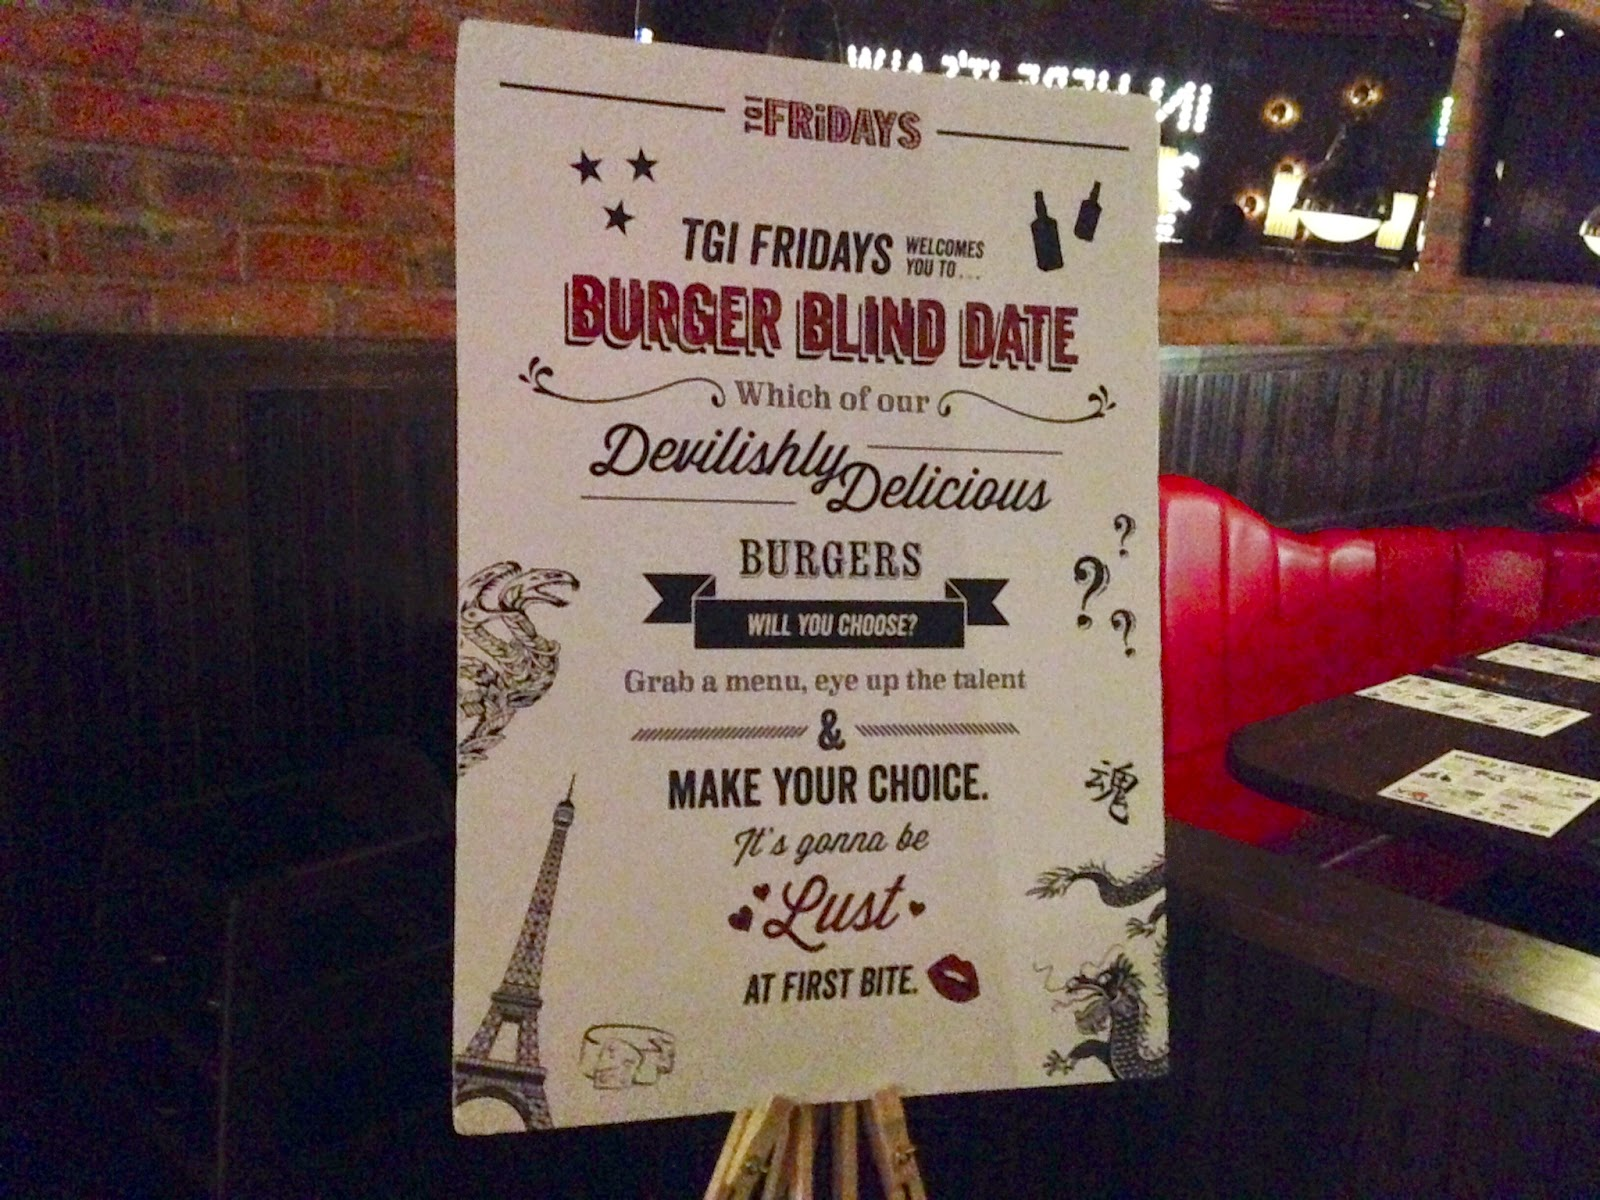 The dating burger